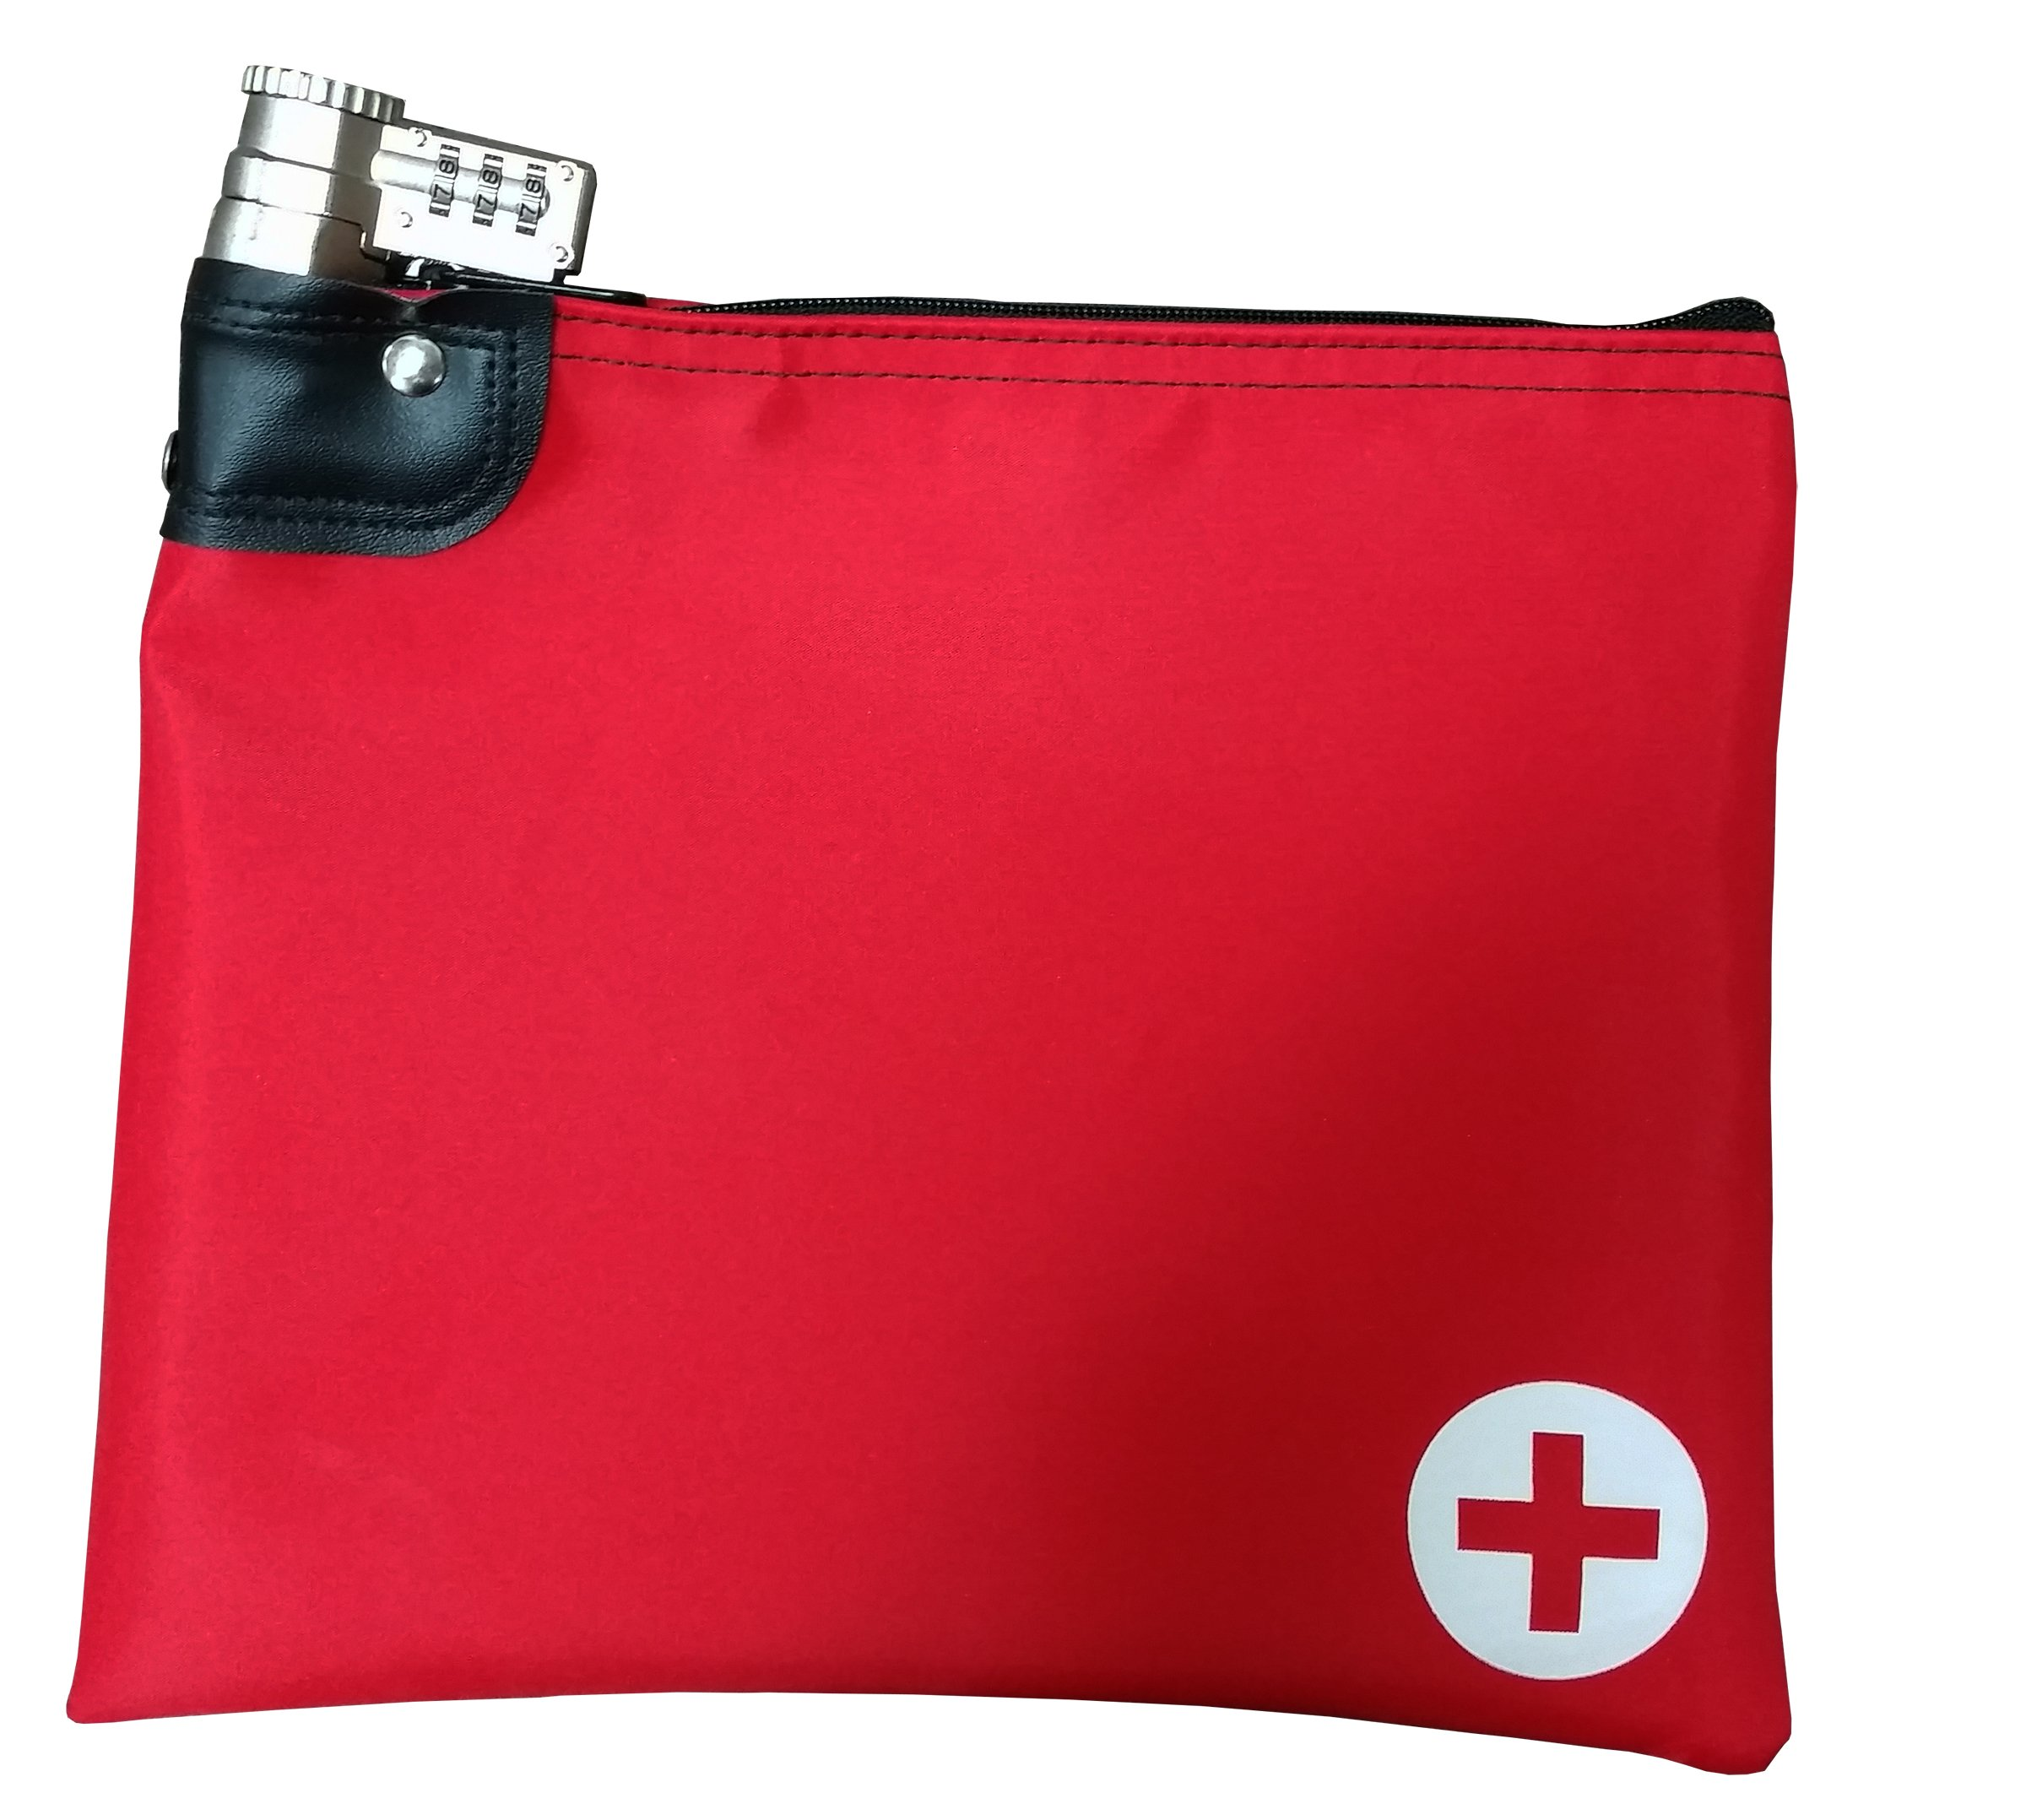 Medication Safety Bag Combination Keyed Lock (Red) by Cardinal bag supplies